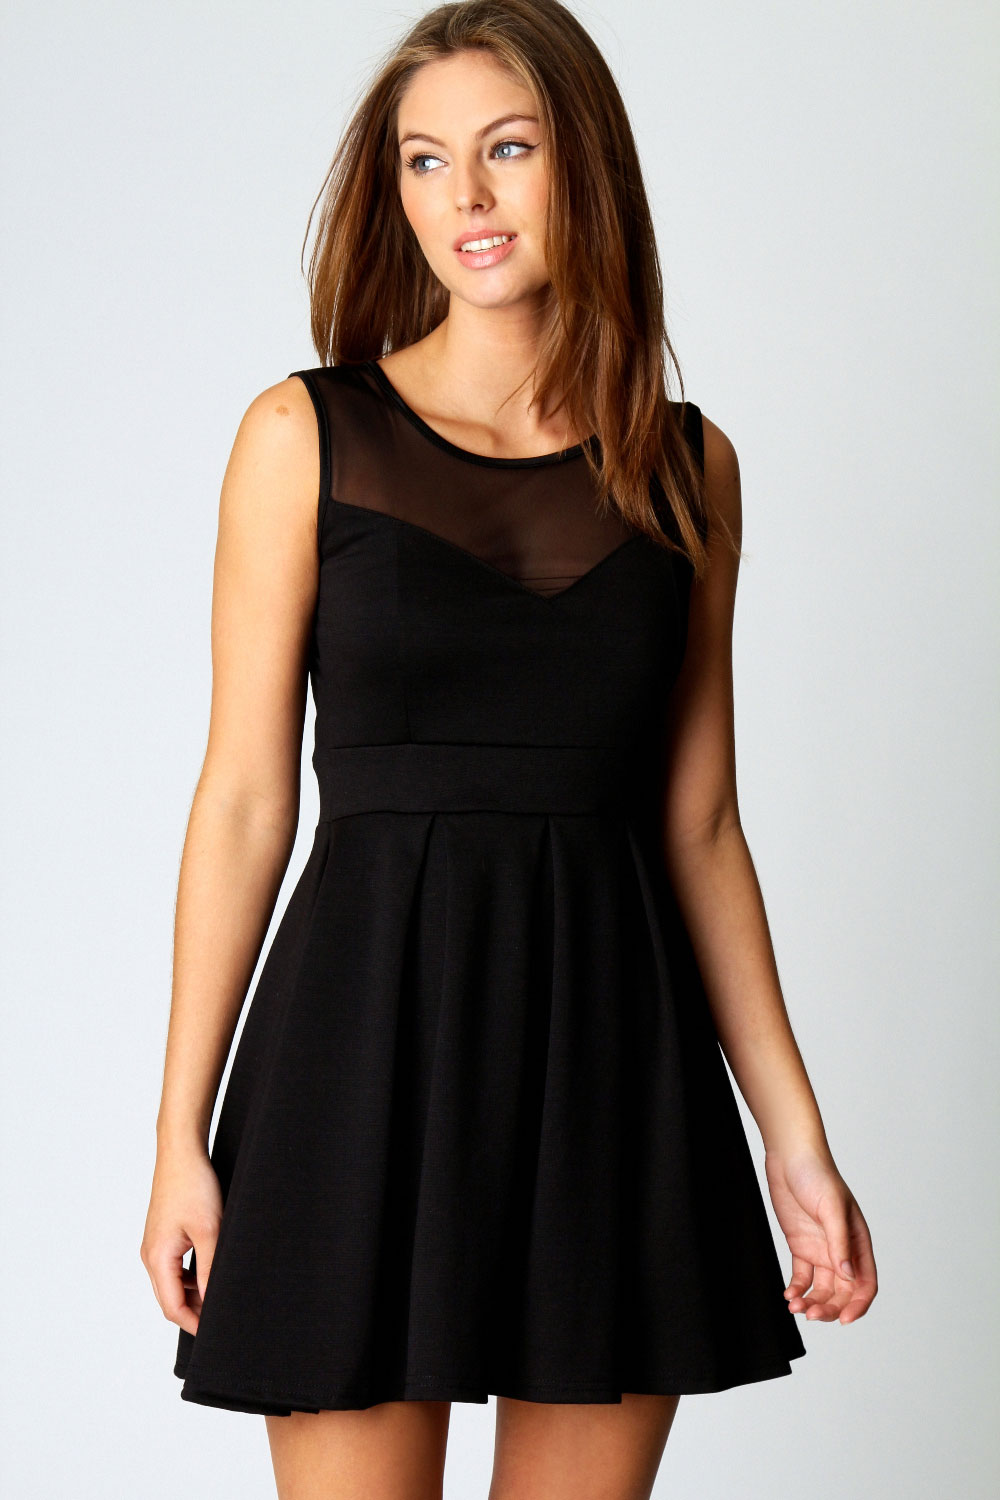 Black dress skater - Image Is Loading Boohoo Cheryl Polyester Skater Dress With Mesh Top